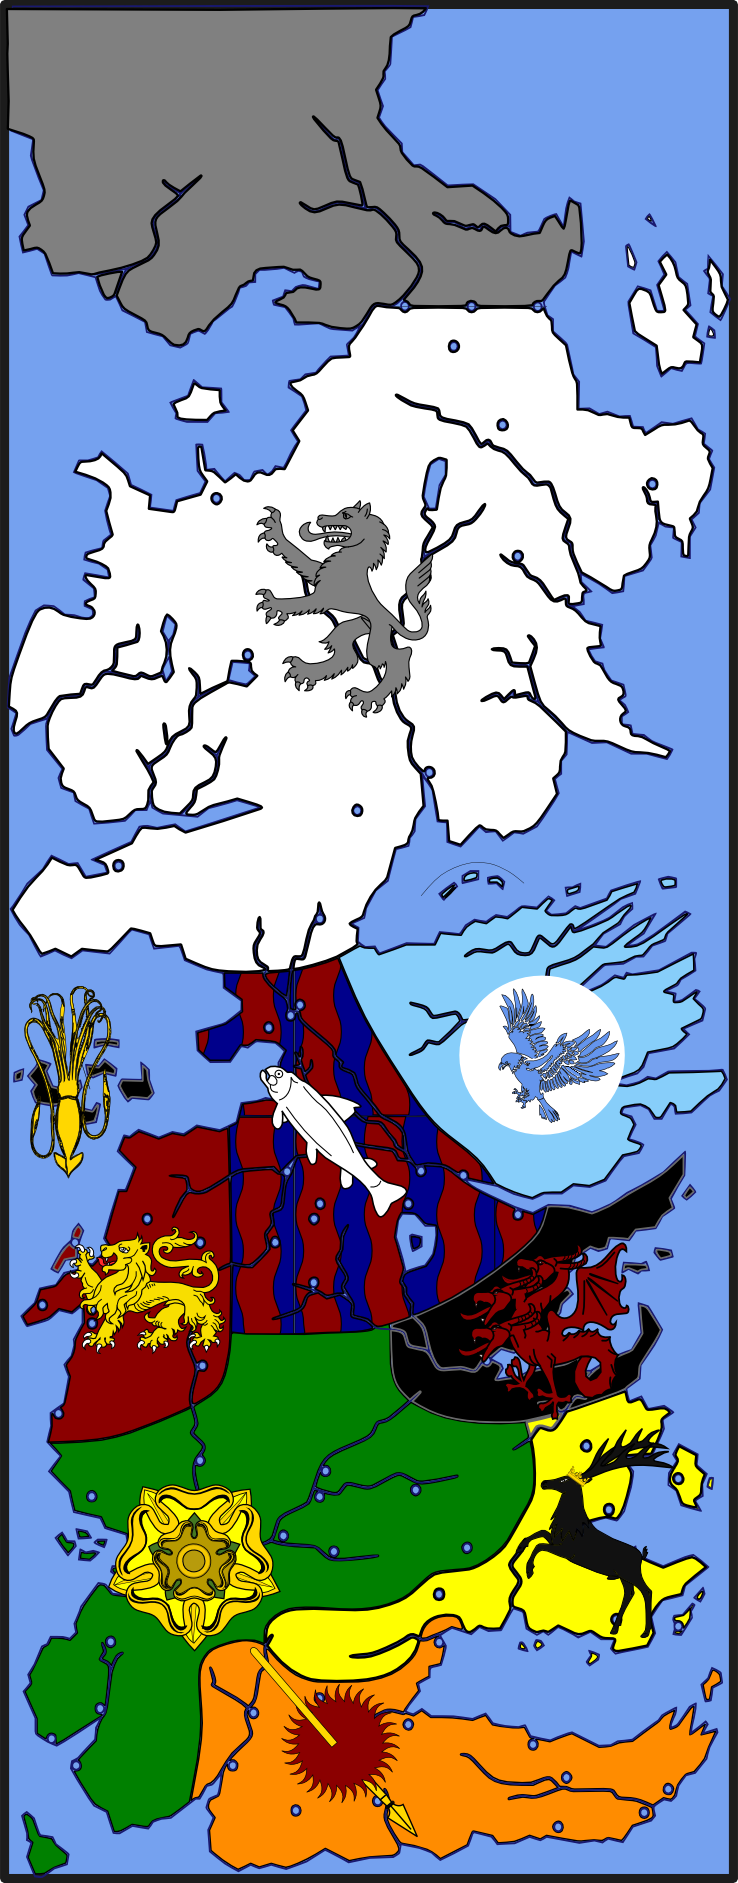 Game of Thrones Game Of Thrones Houses Map on george r. r. martin, throne of bones map, a clash of kings houses map, alfie owen-allen, upside down world map, game of thrones - season 1, fire and blood, the prince of winterfell, a golden crown, ww2 map, tales of dunk and egg, calabria italy map, a song of ice and fire, a feast for crows, gameof thrones map, a storm of swords, game of thrones - season 2, dothraki language, usa map, see your house map, fire and ice book map, house targaryen, a dance with dragons, gsme of thrones map, winter is coming, lord snow, a clash of kings, ice and fire world map, kolkata city map, crown of thrones map, king of thrones map, antarctic peninsula map, the winds of winter, guild wars 2 map, walking dead map,